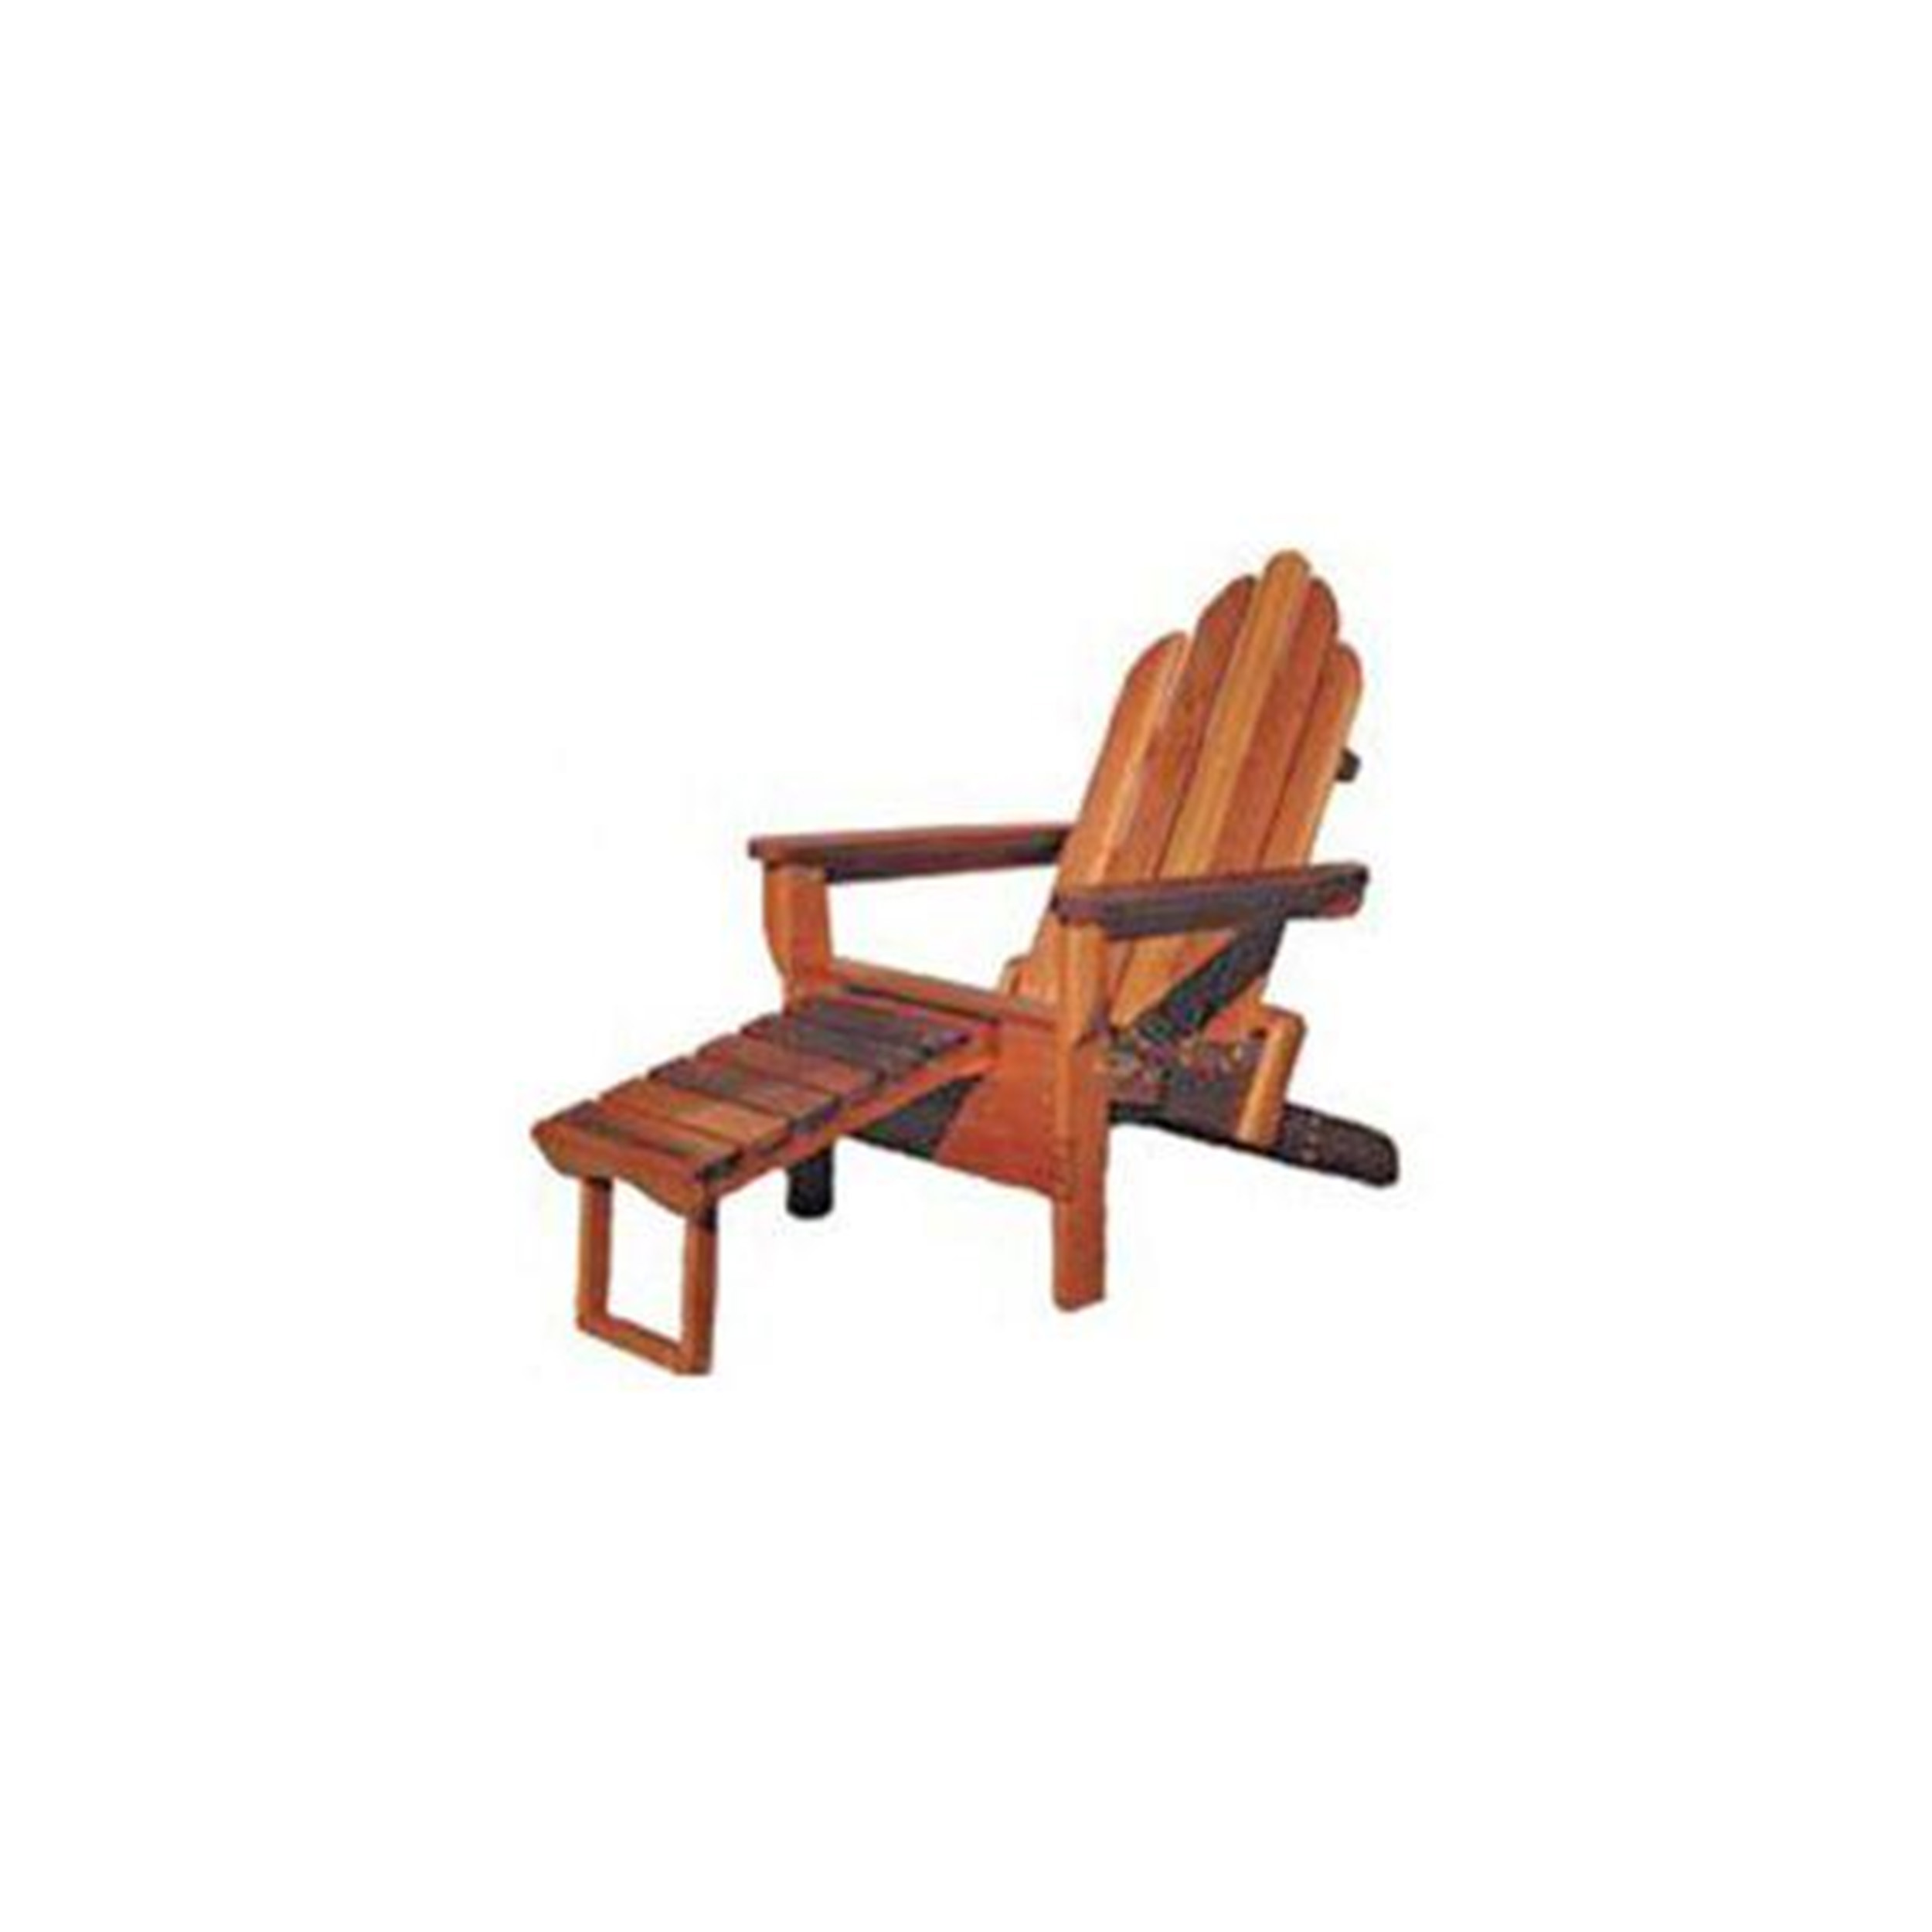 Woodworking Project Paper Plan to Build Adirondack Folder with Footrest